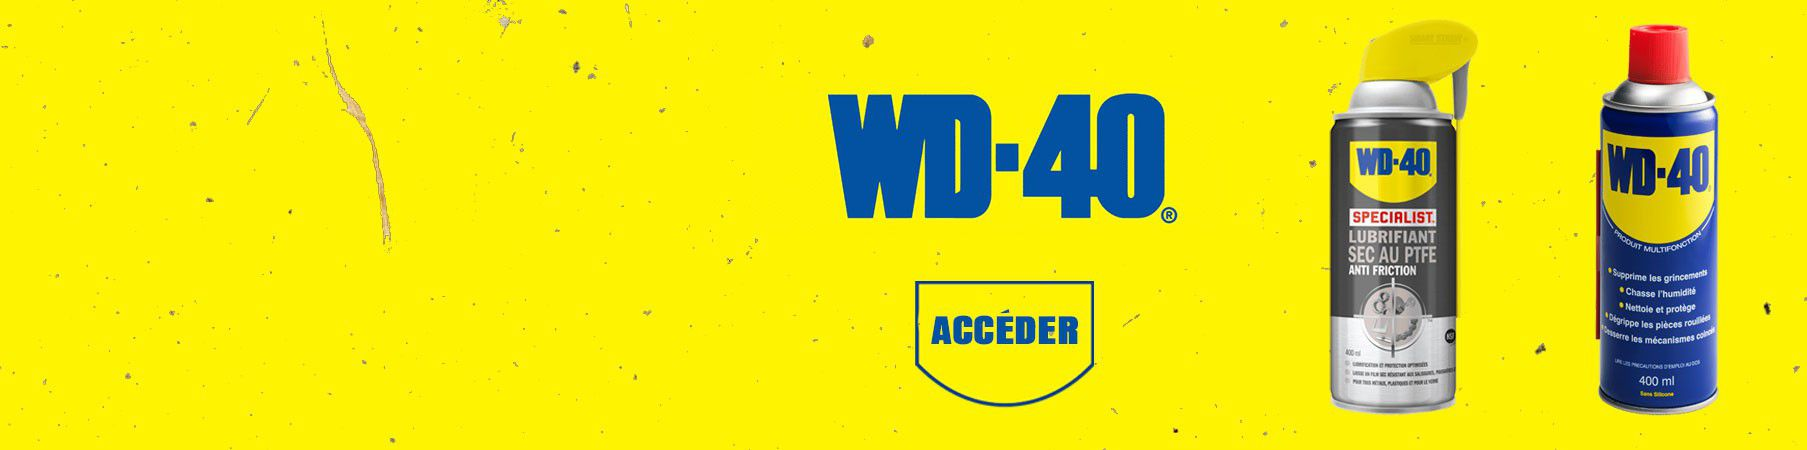 WD 40 Multifonction & Specialist